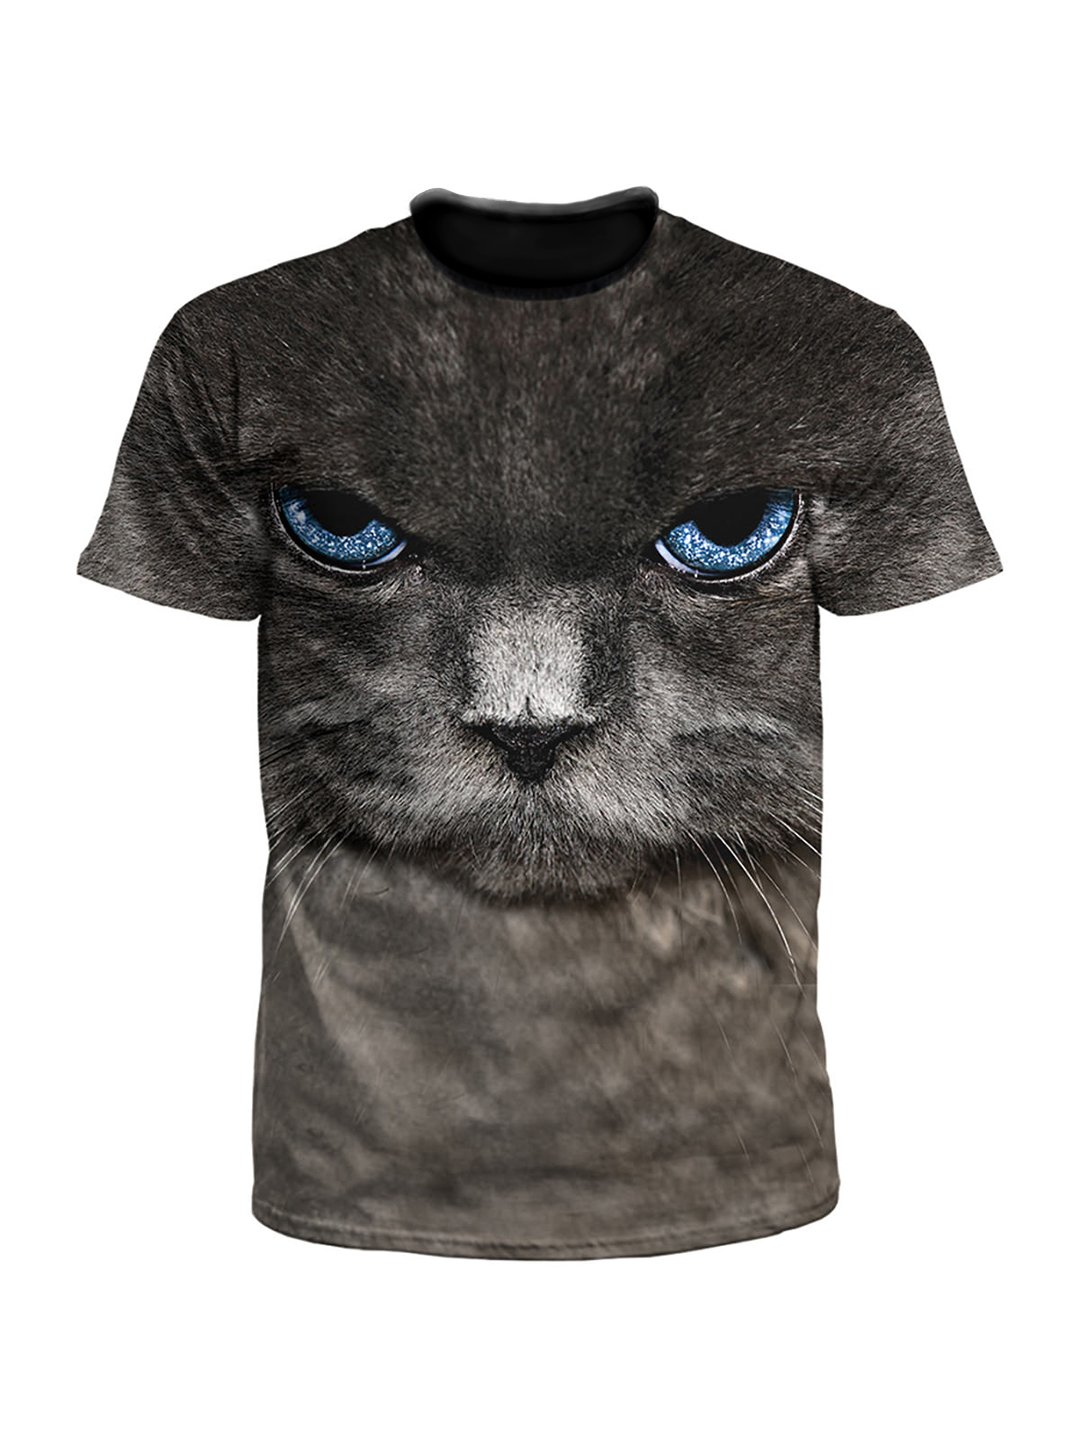 Eye of the Kitty Tee